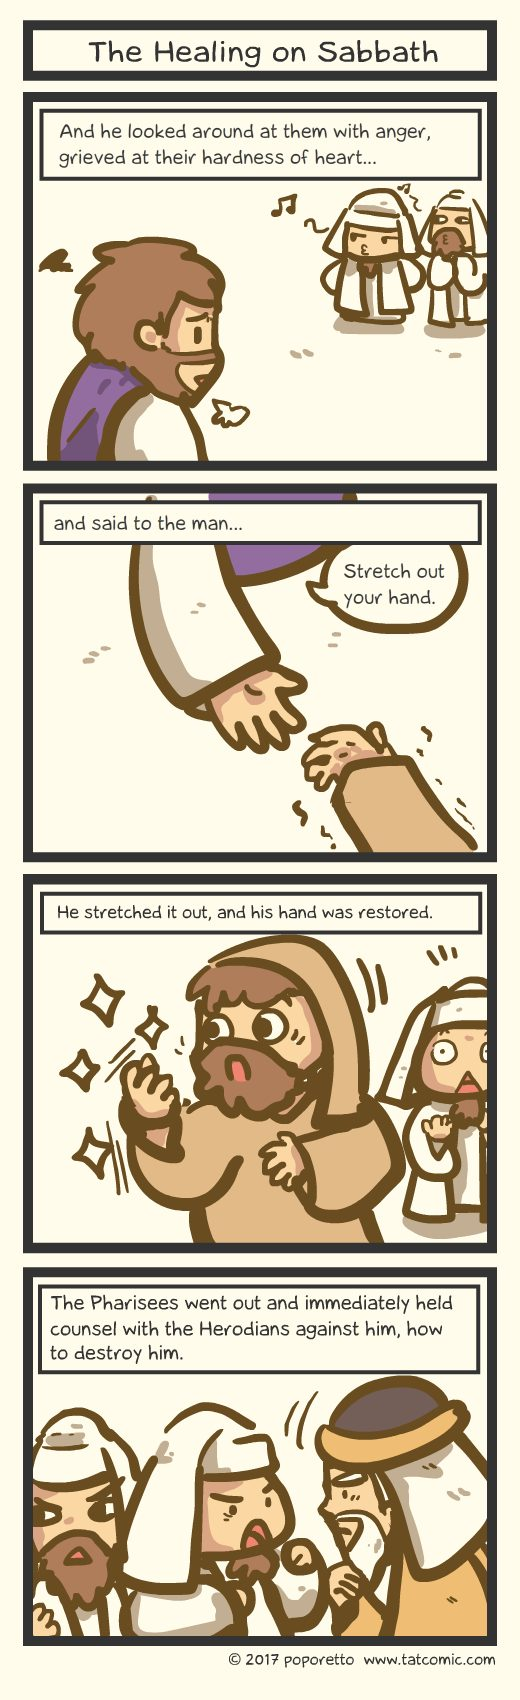 Gospel Christian comic strip the law of sabbath Jesus healing the withered hand even when it's sabbath day jesus still heals him